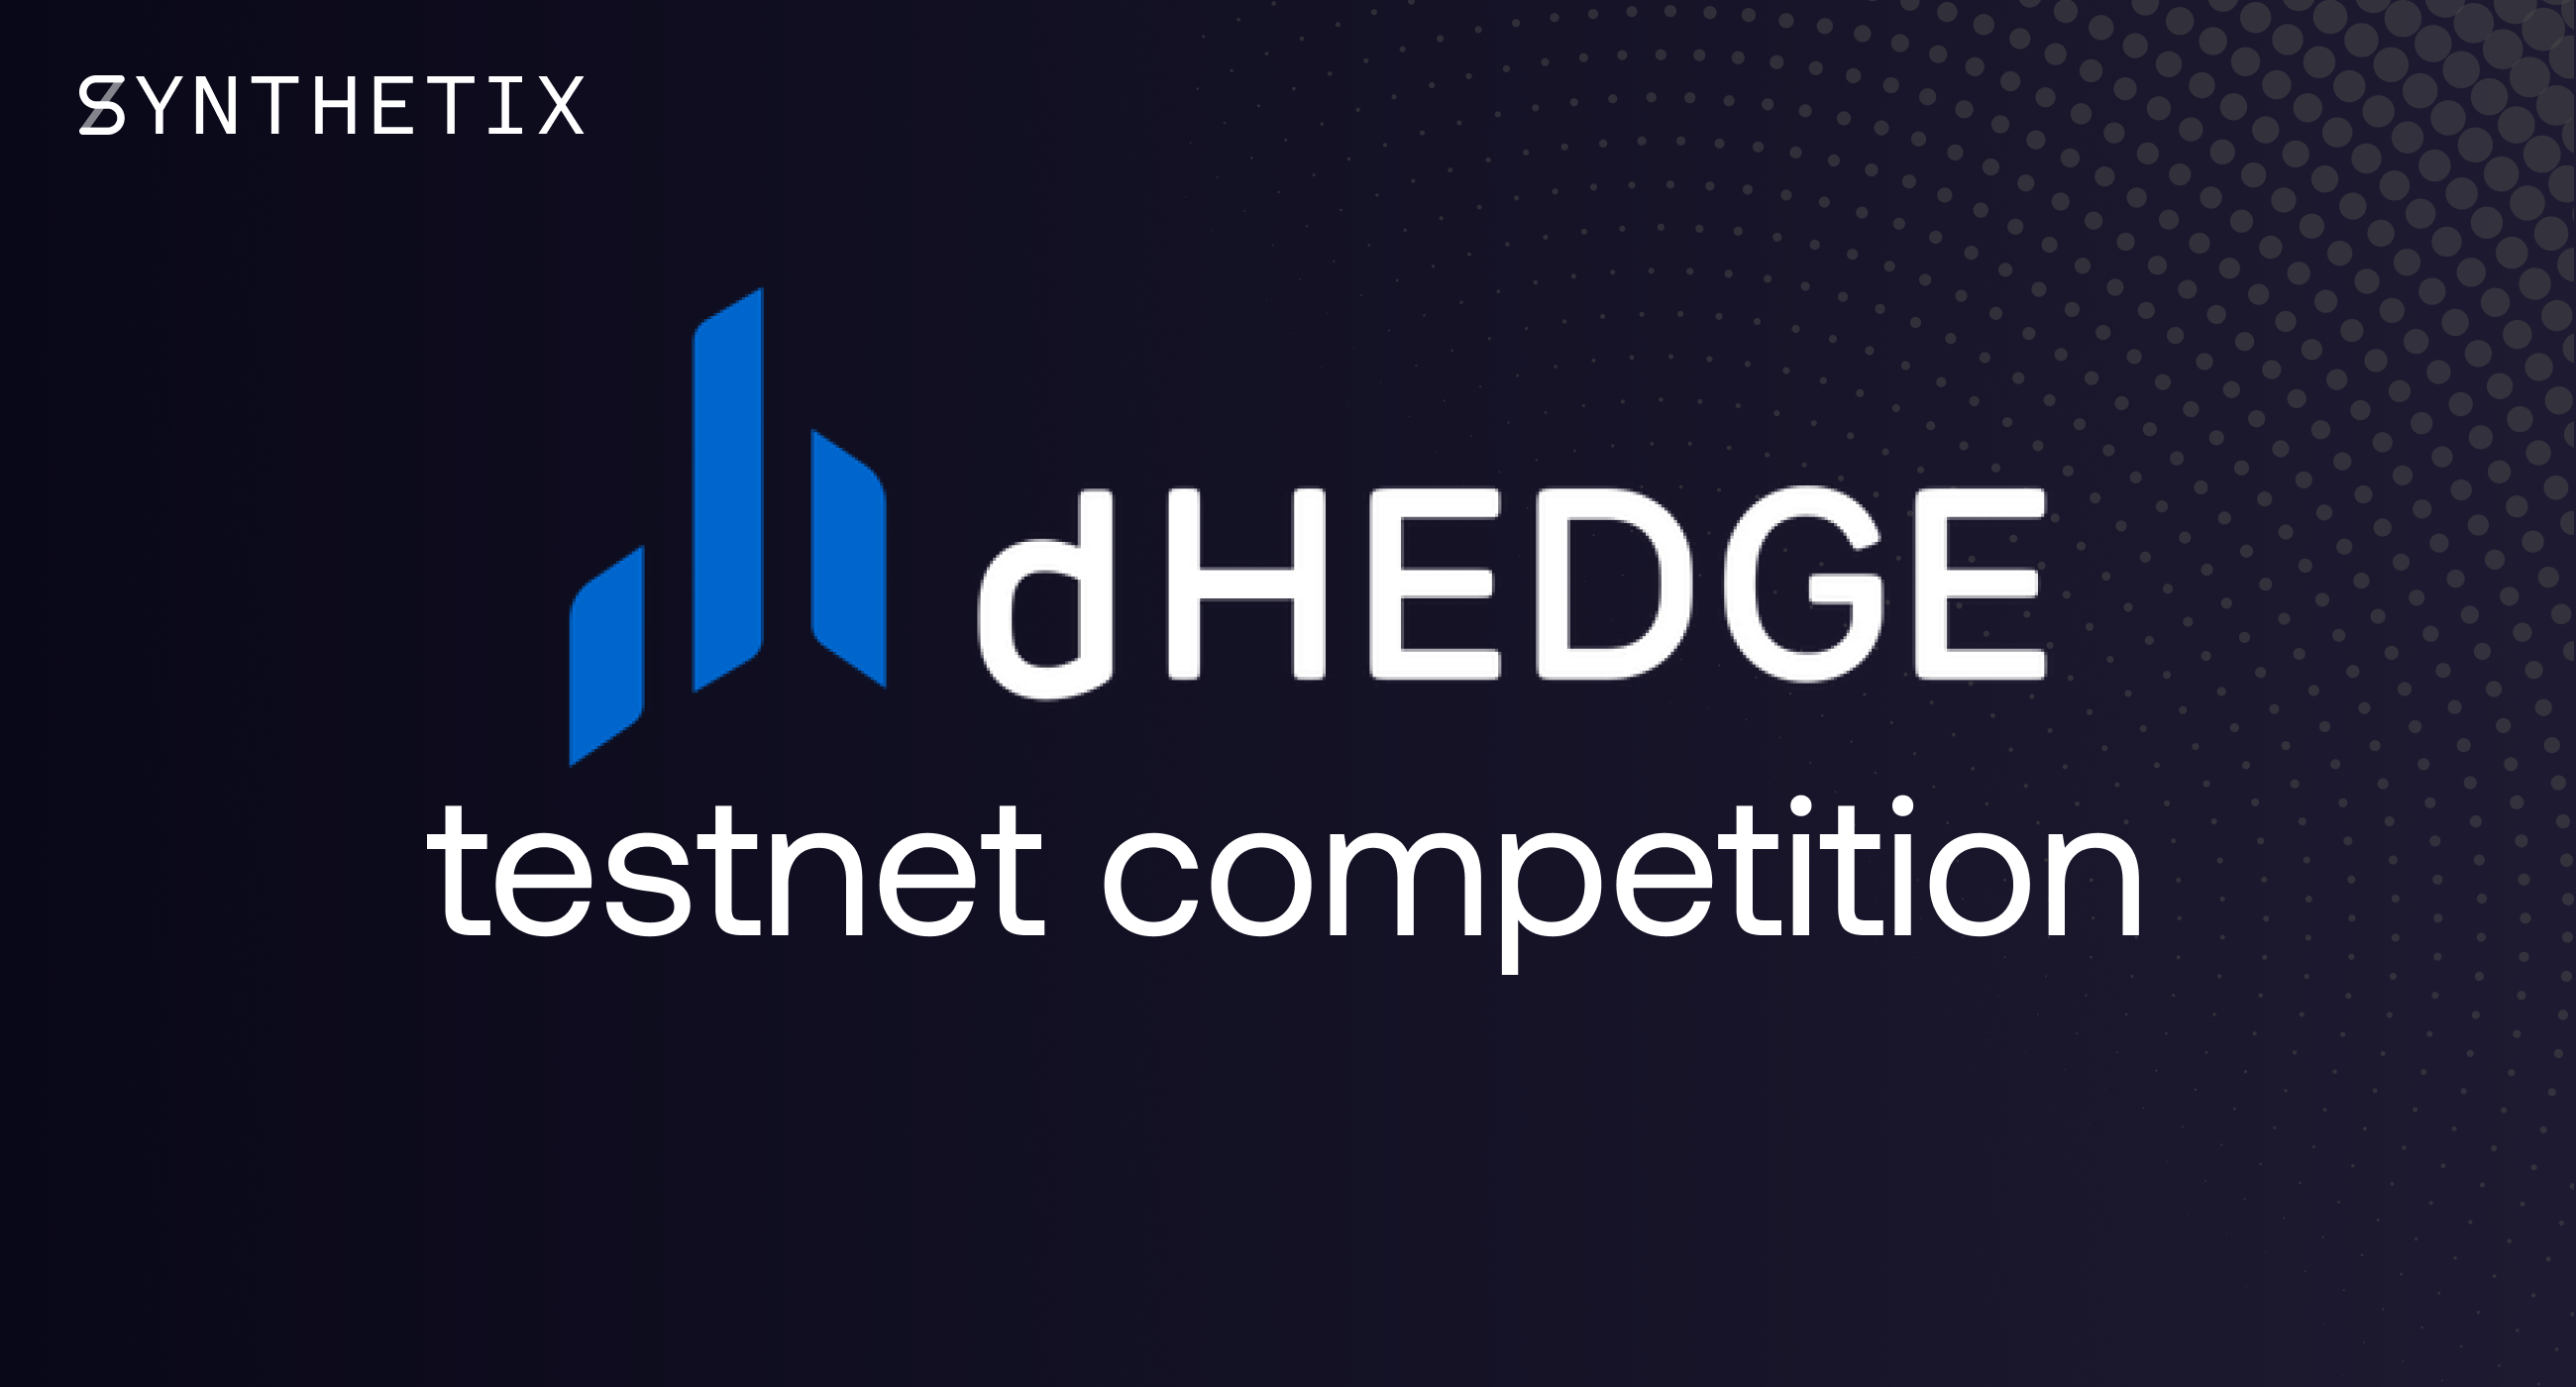 dHedge testnet trading competition, powered by Synthetix